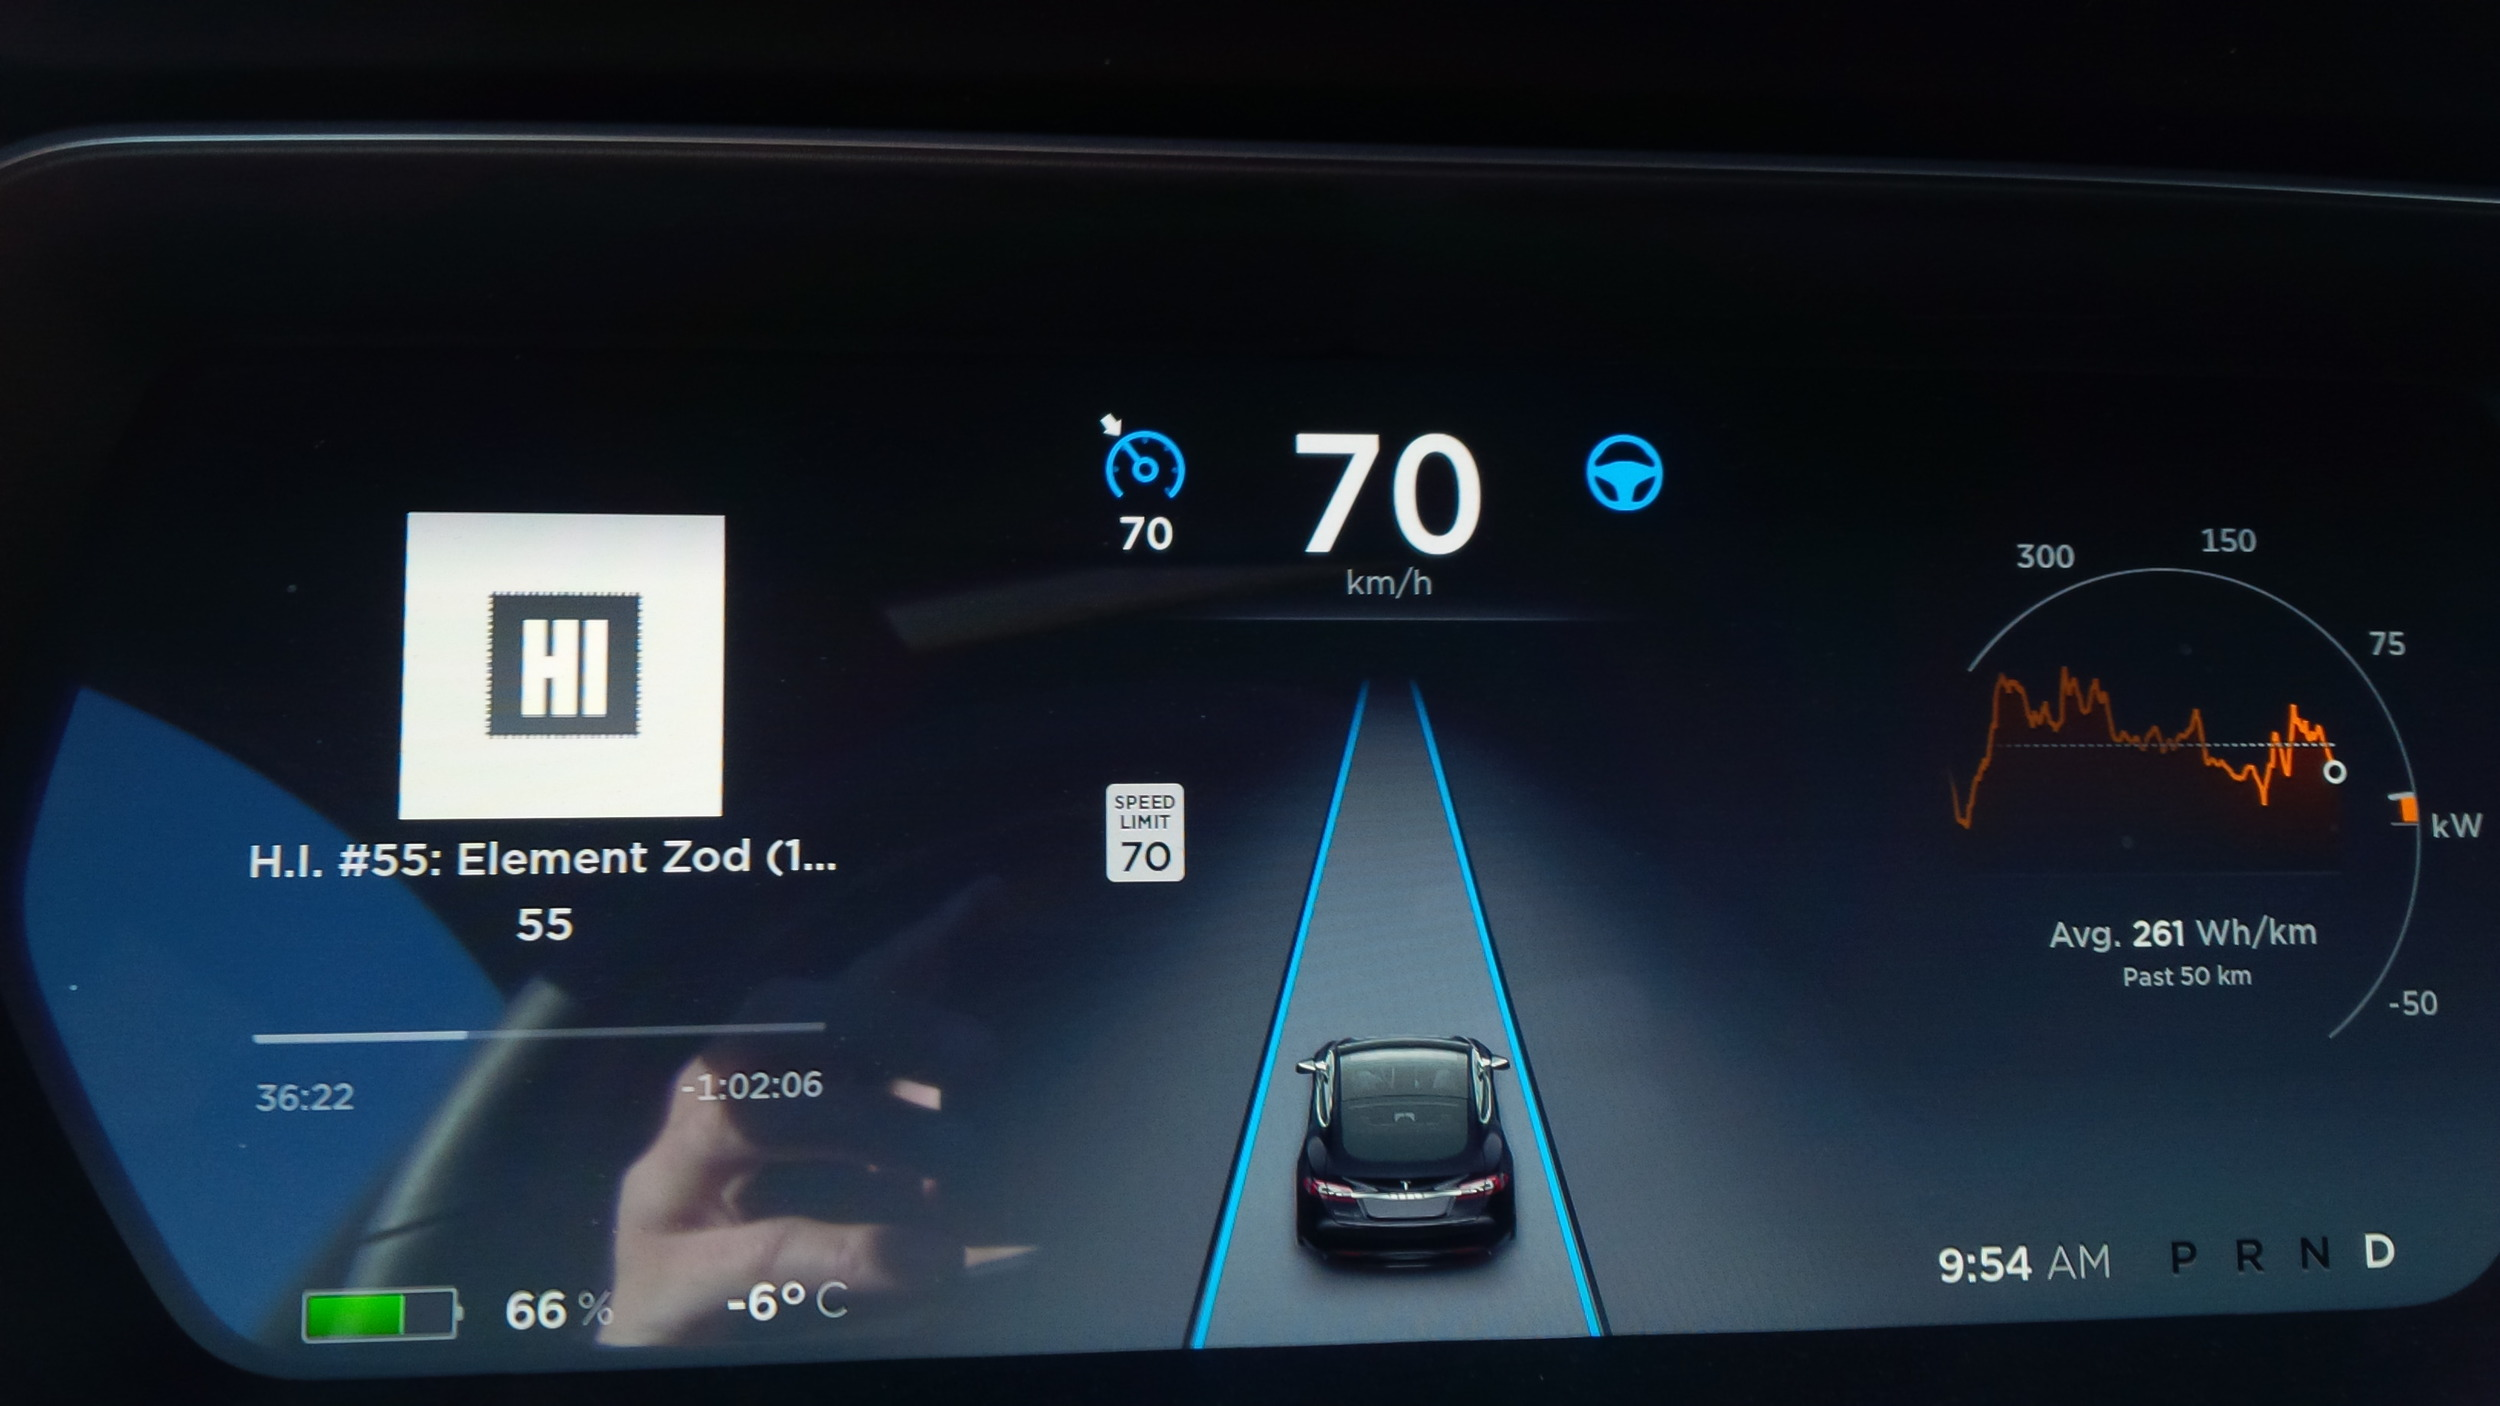 Grant tests the autopilot in his Tesla